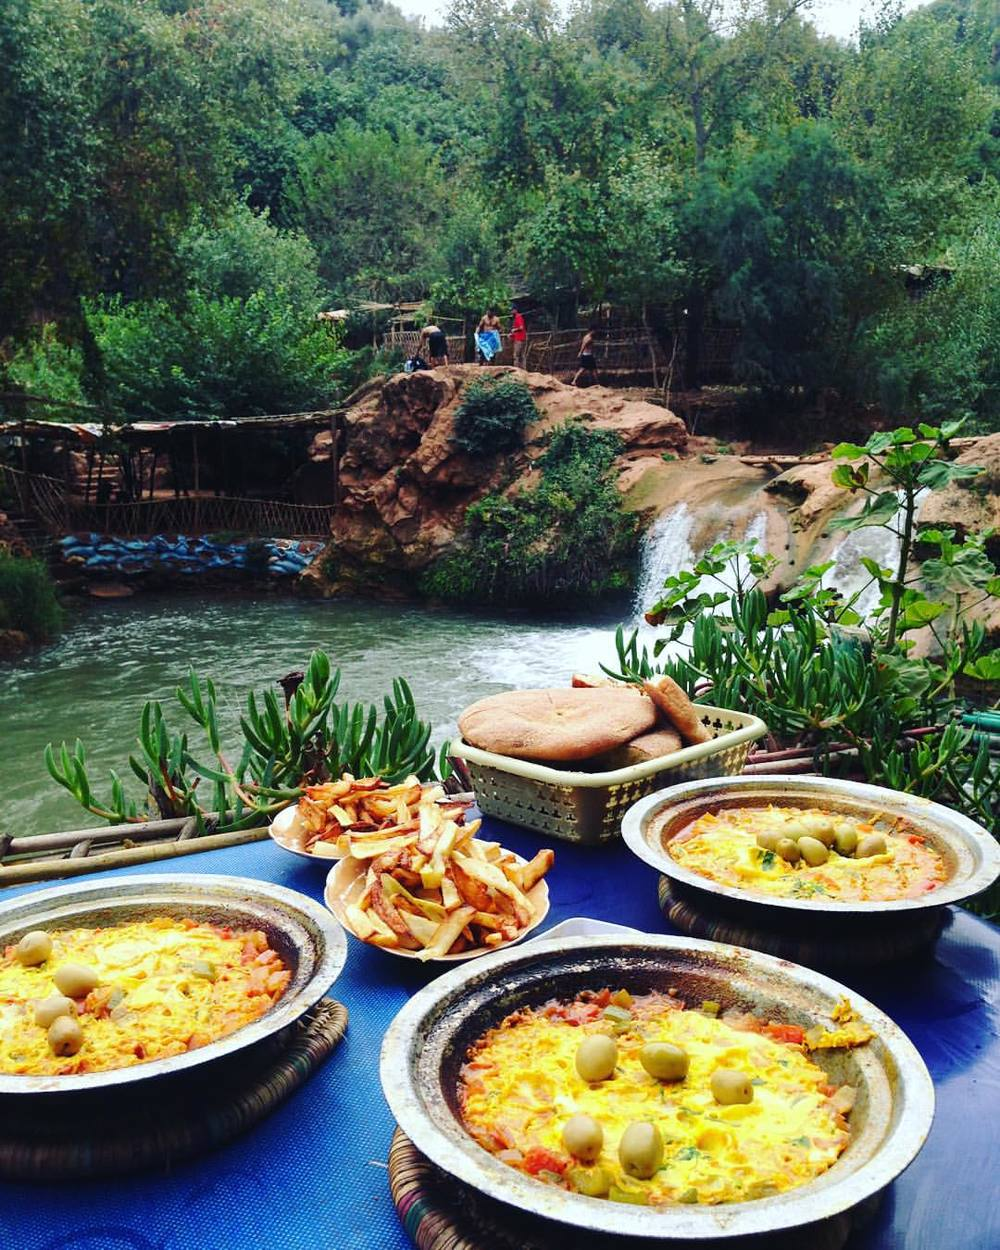 Moroccan Feast with a view, best food yet! Berber omelette 👌🏽💙🍳💚💦 @ashleybeer @hannahirschfeld